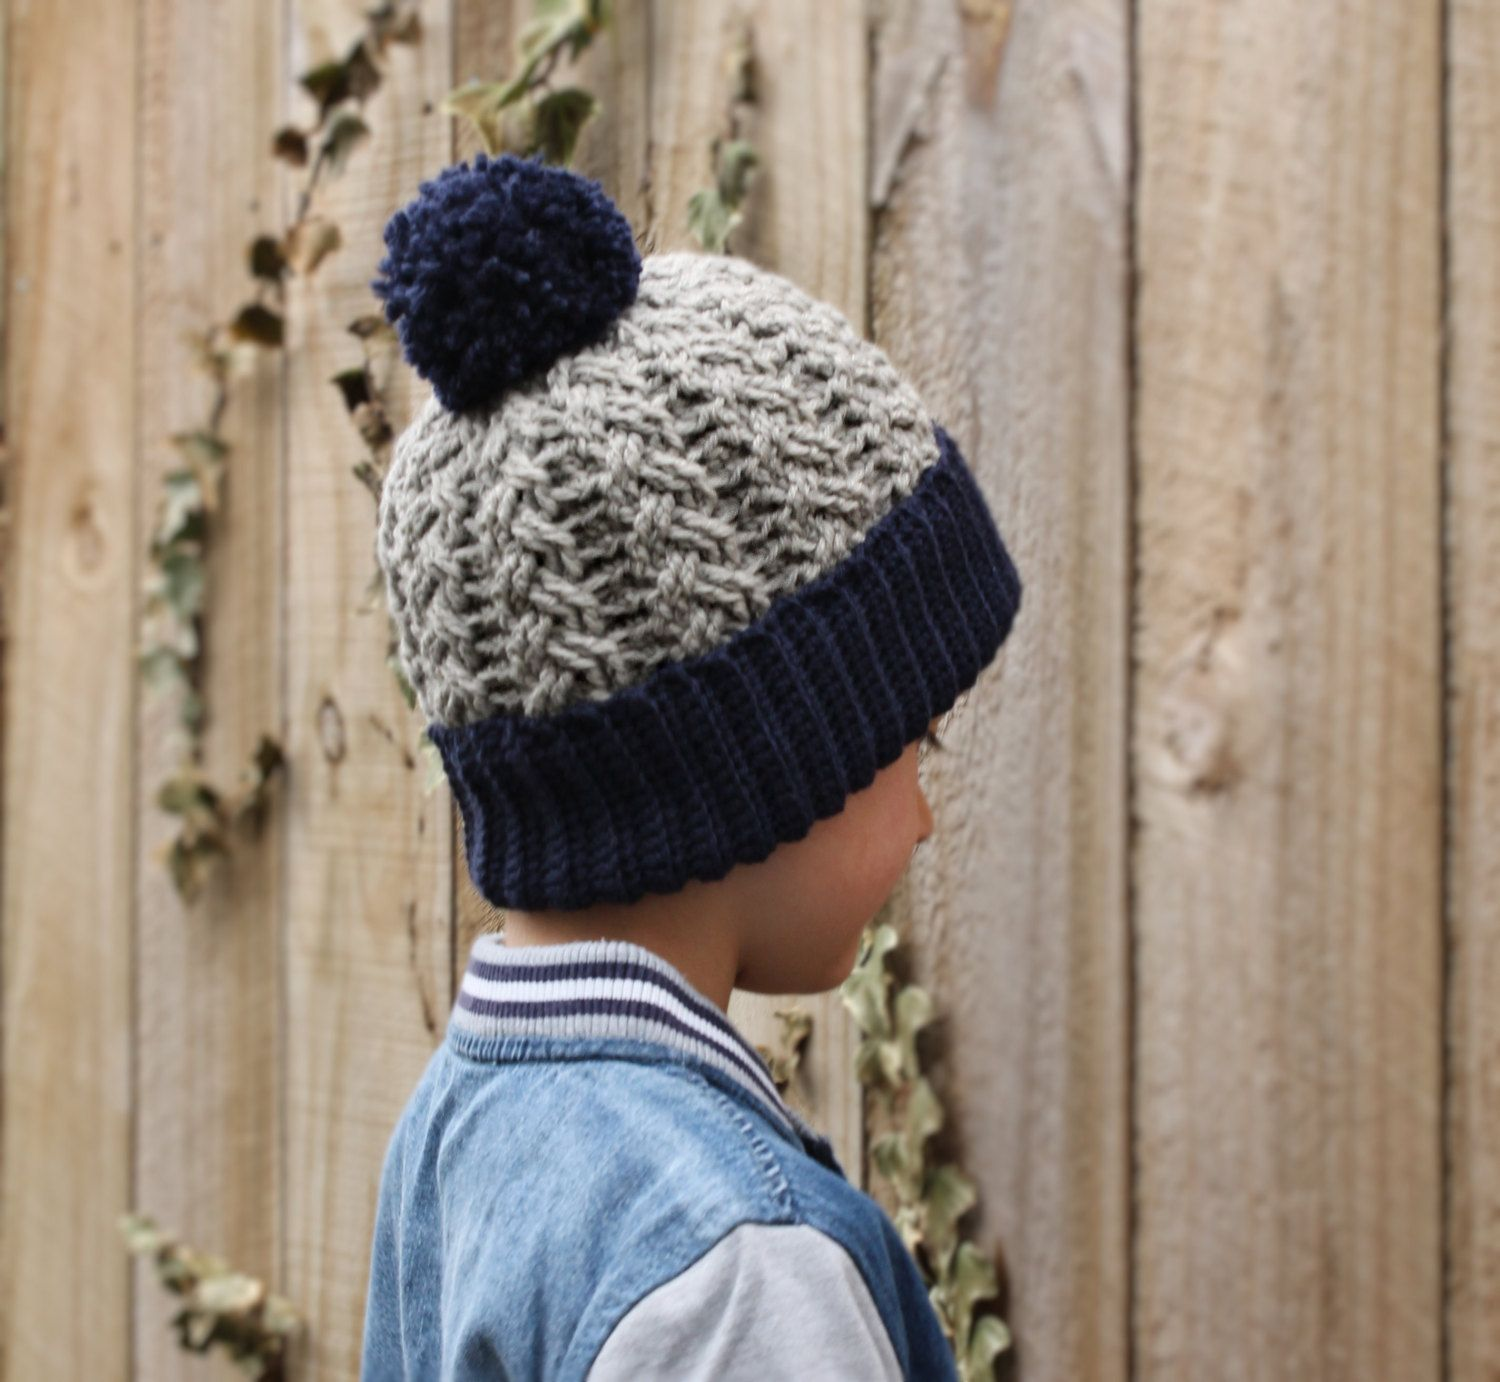 Crochet beanie crochet pattern crochet pattern for cabled carter crochet beanie crochet pattern crochet pattern for cabled carter beanie boys patterns pattern only bankloansurffo Images